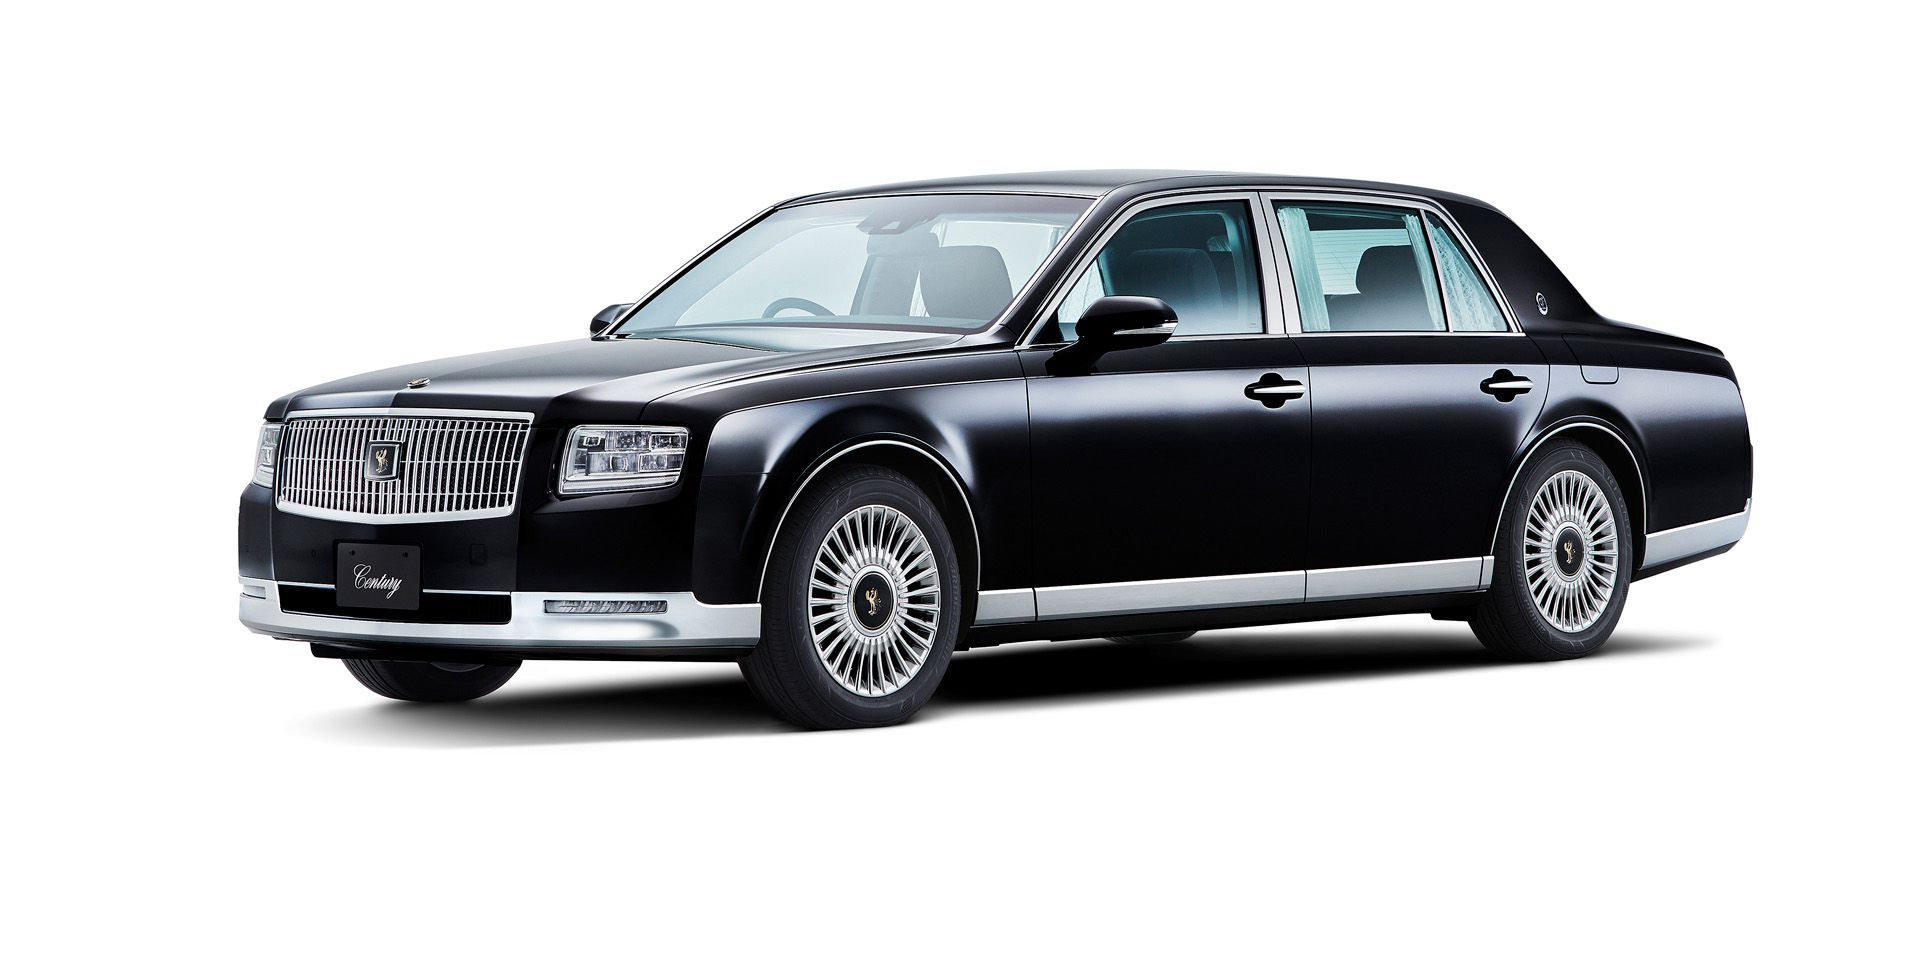 These Are The Most Luxurious Cars You Can Buy Today Toyota Century Best Luxury Cars Super Luxury Cars